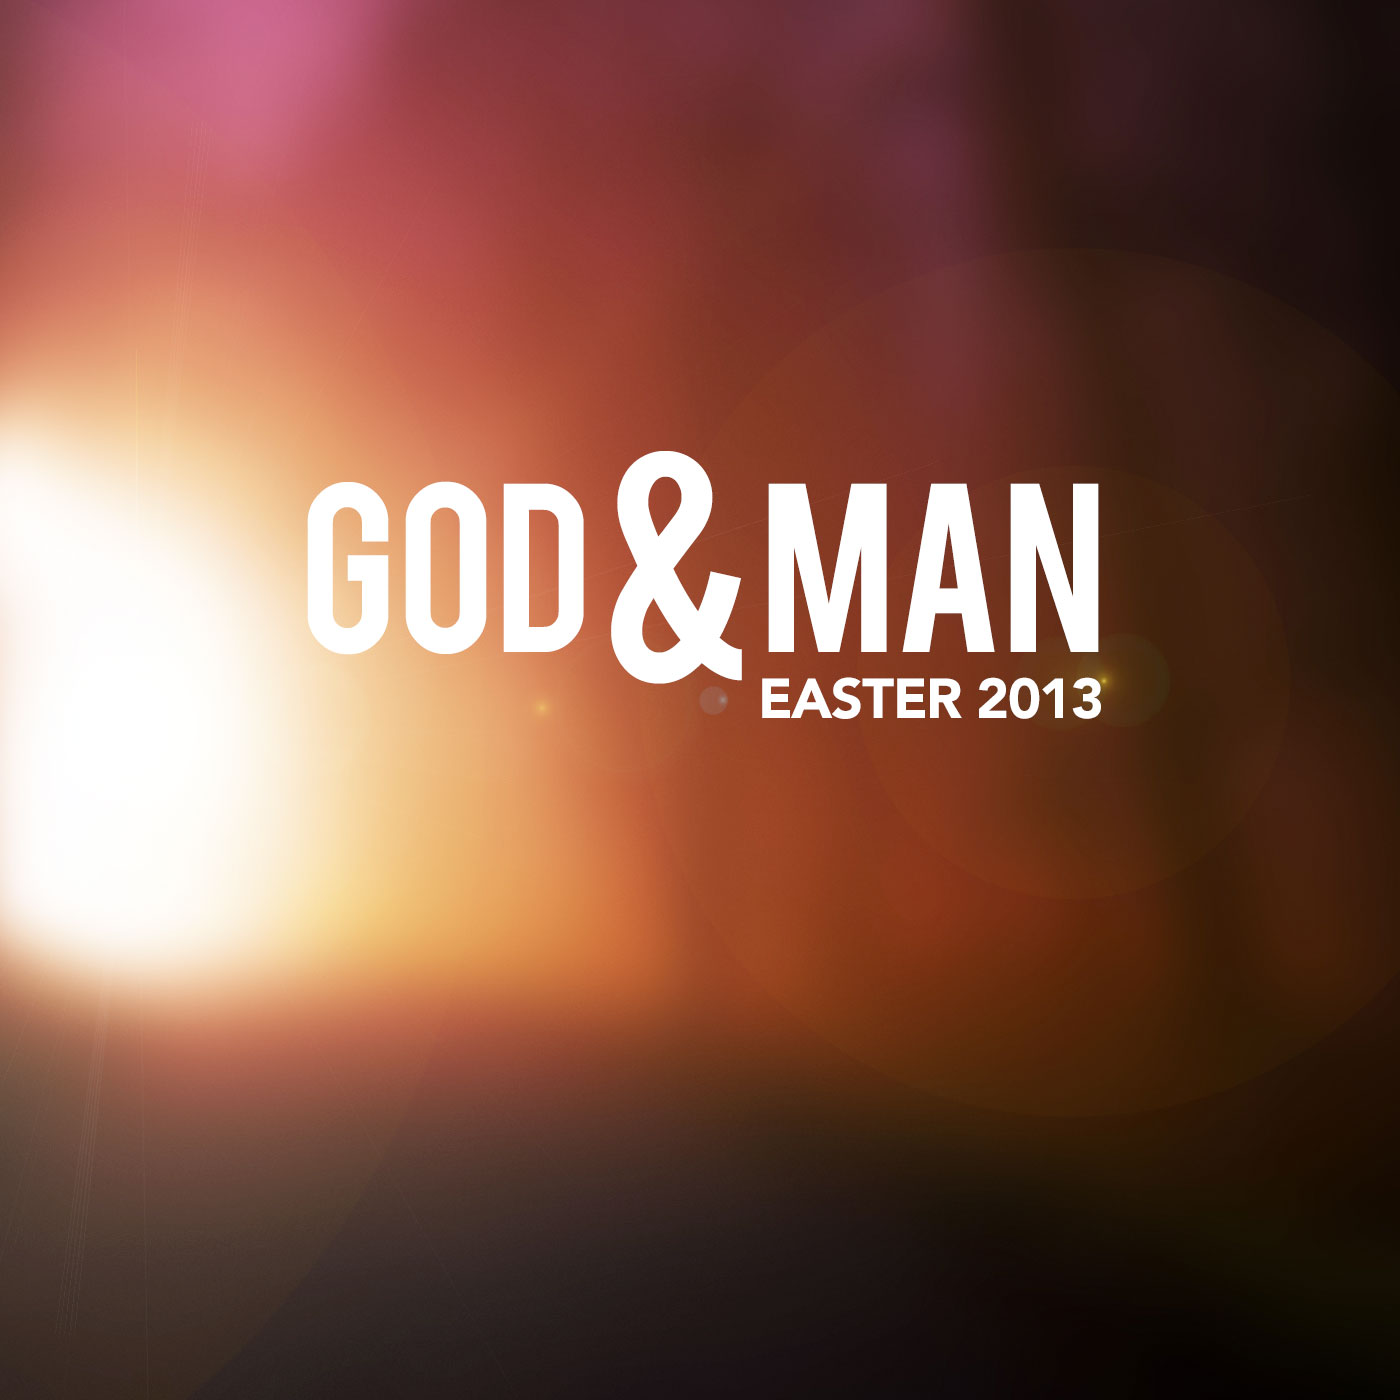 God And Man - Easter 2013